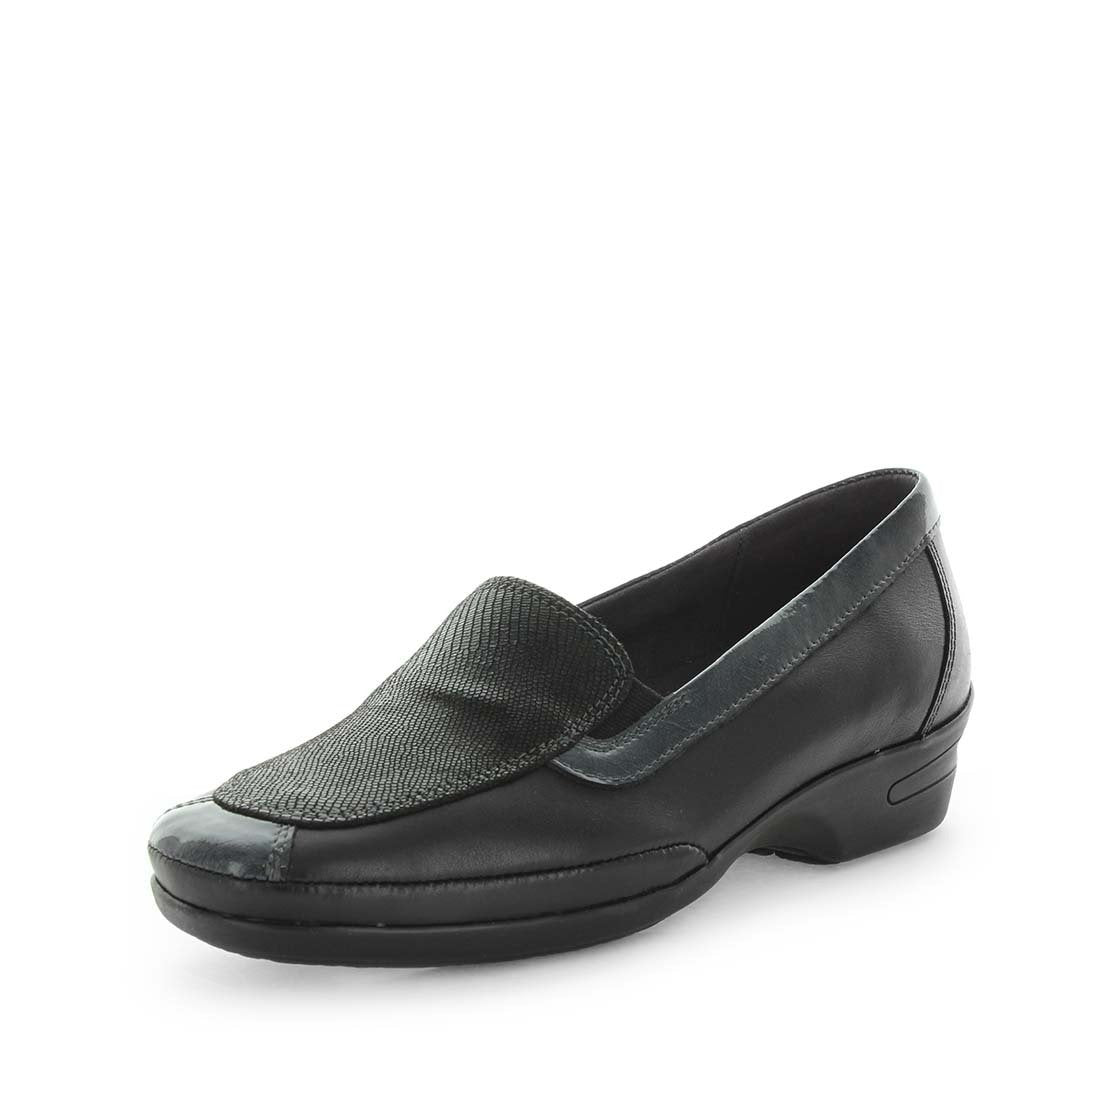 Womens leather loafer, womens comfort shoes, womens all leather flat shoe, kiarflex, kalani